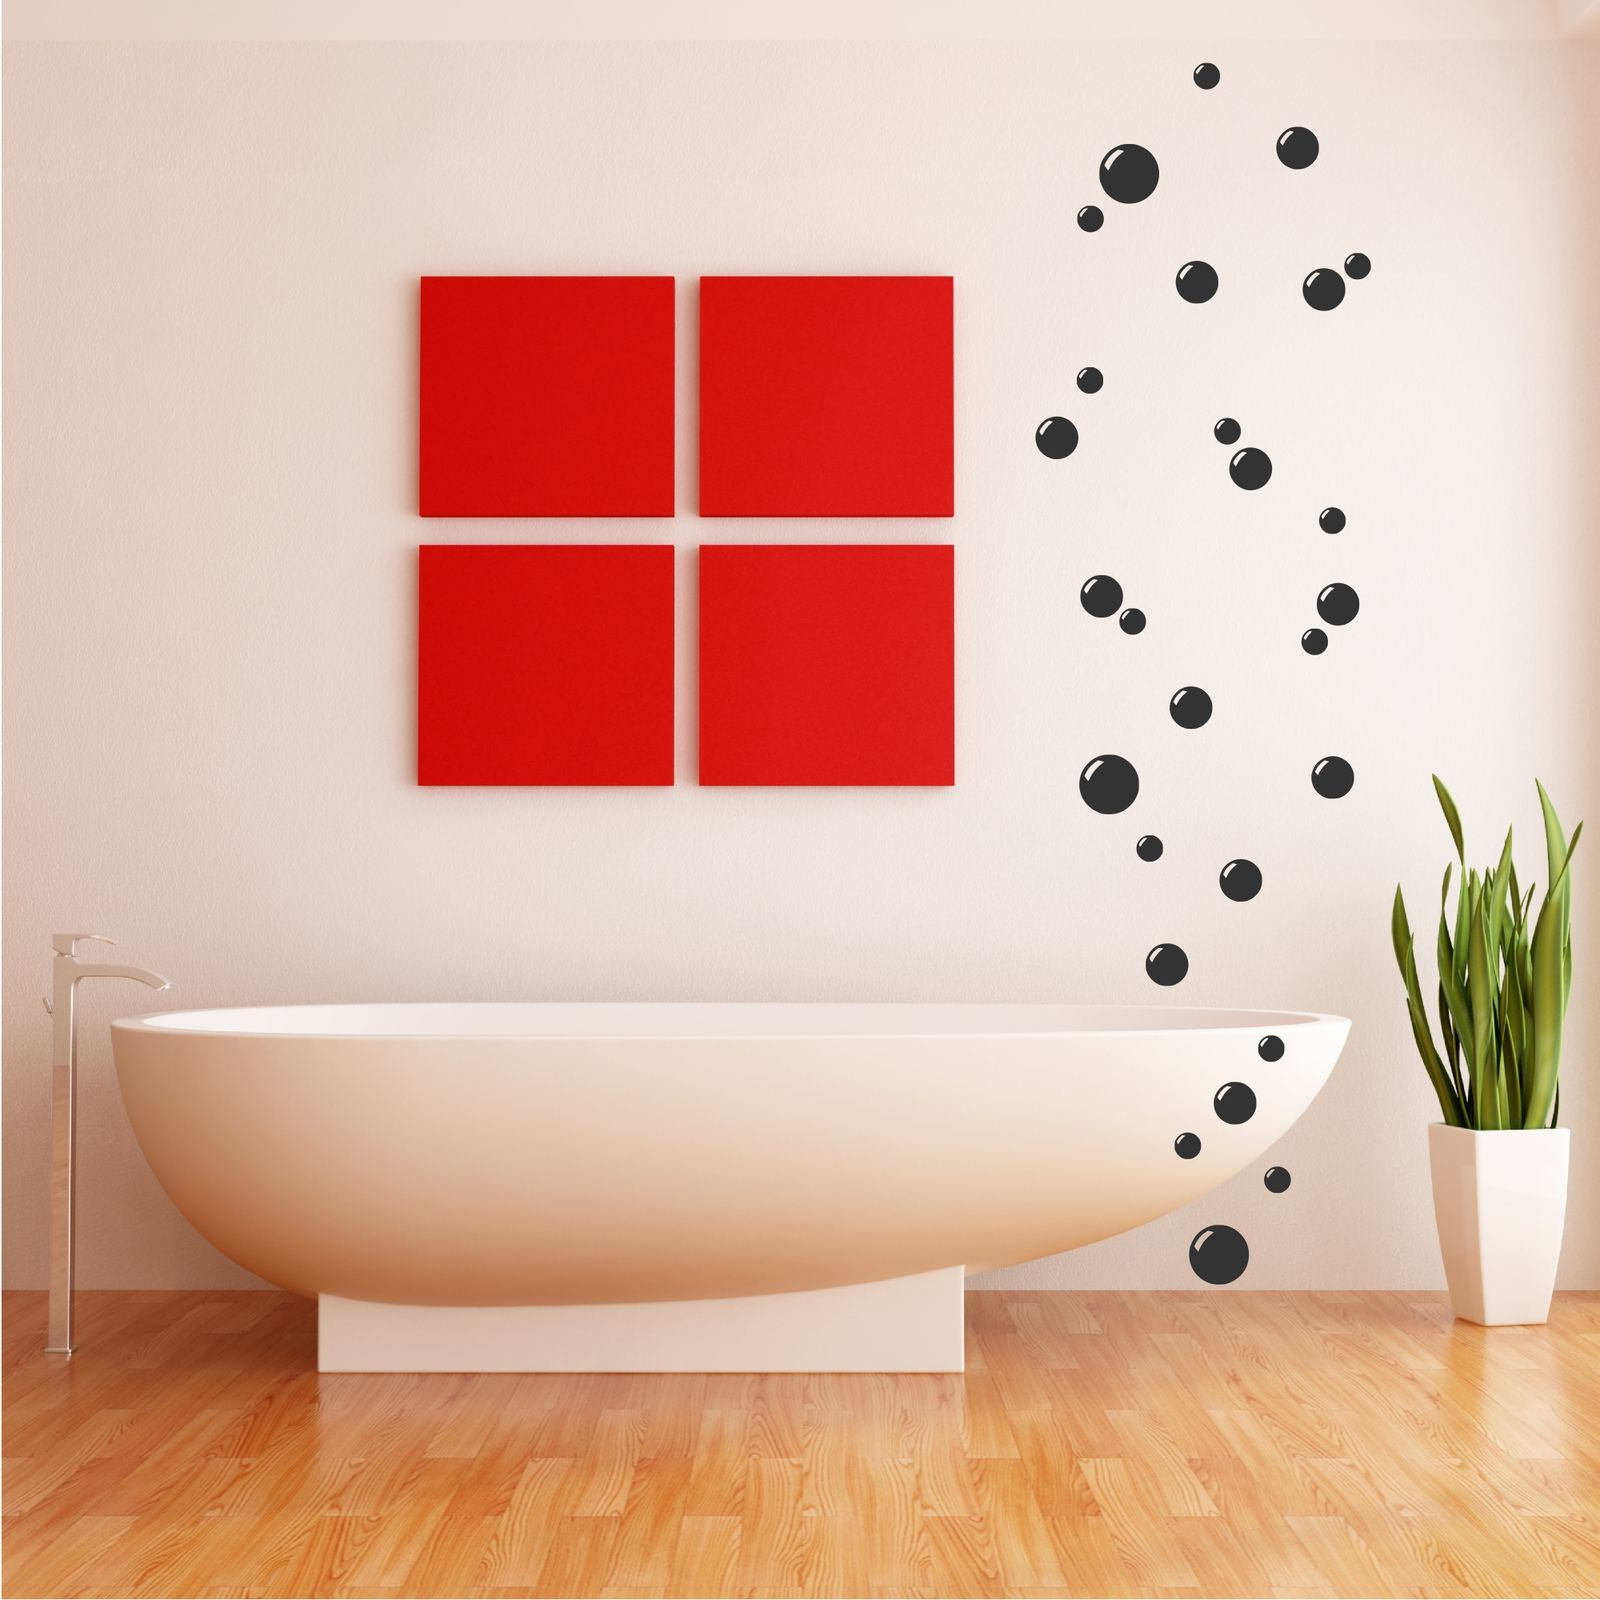 Bathroom vinyl wall art